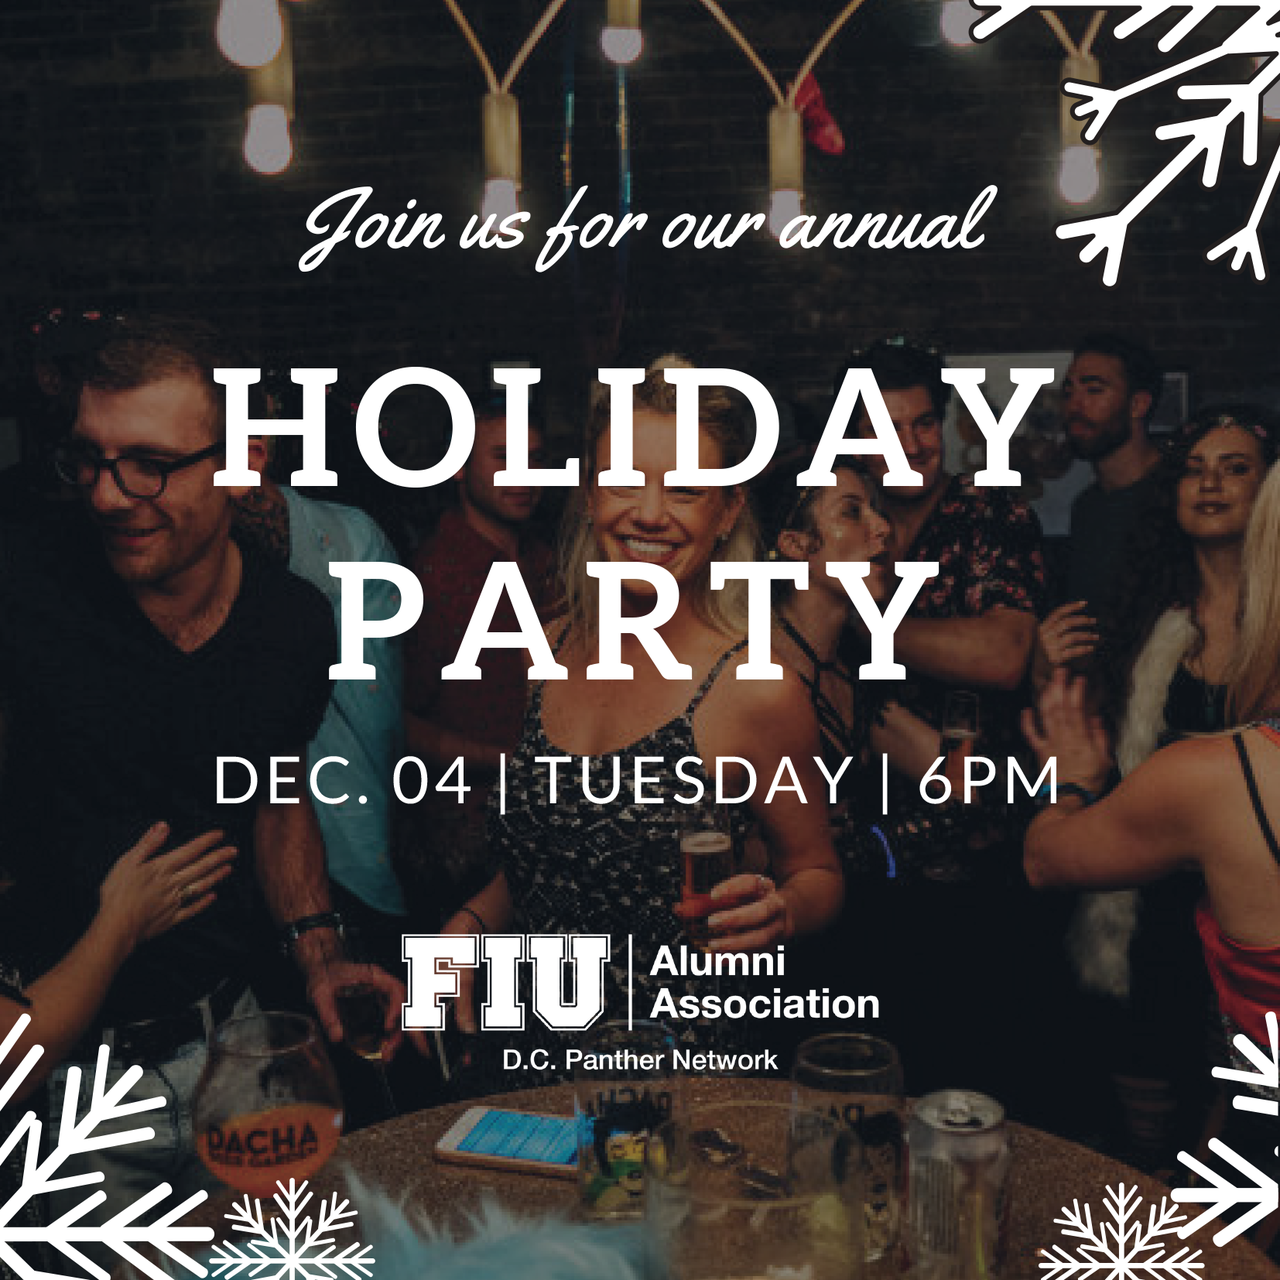 dc_holiday_party_invite_png.png